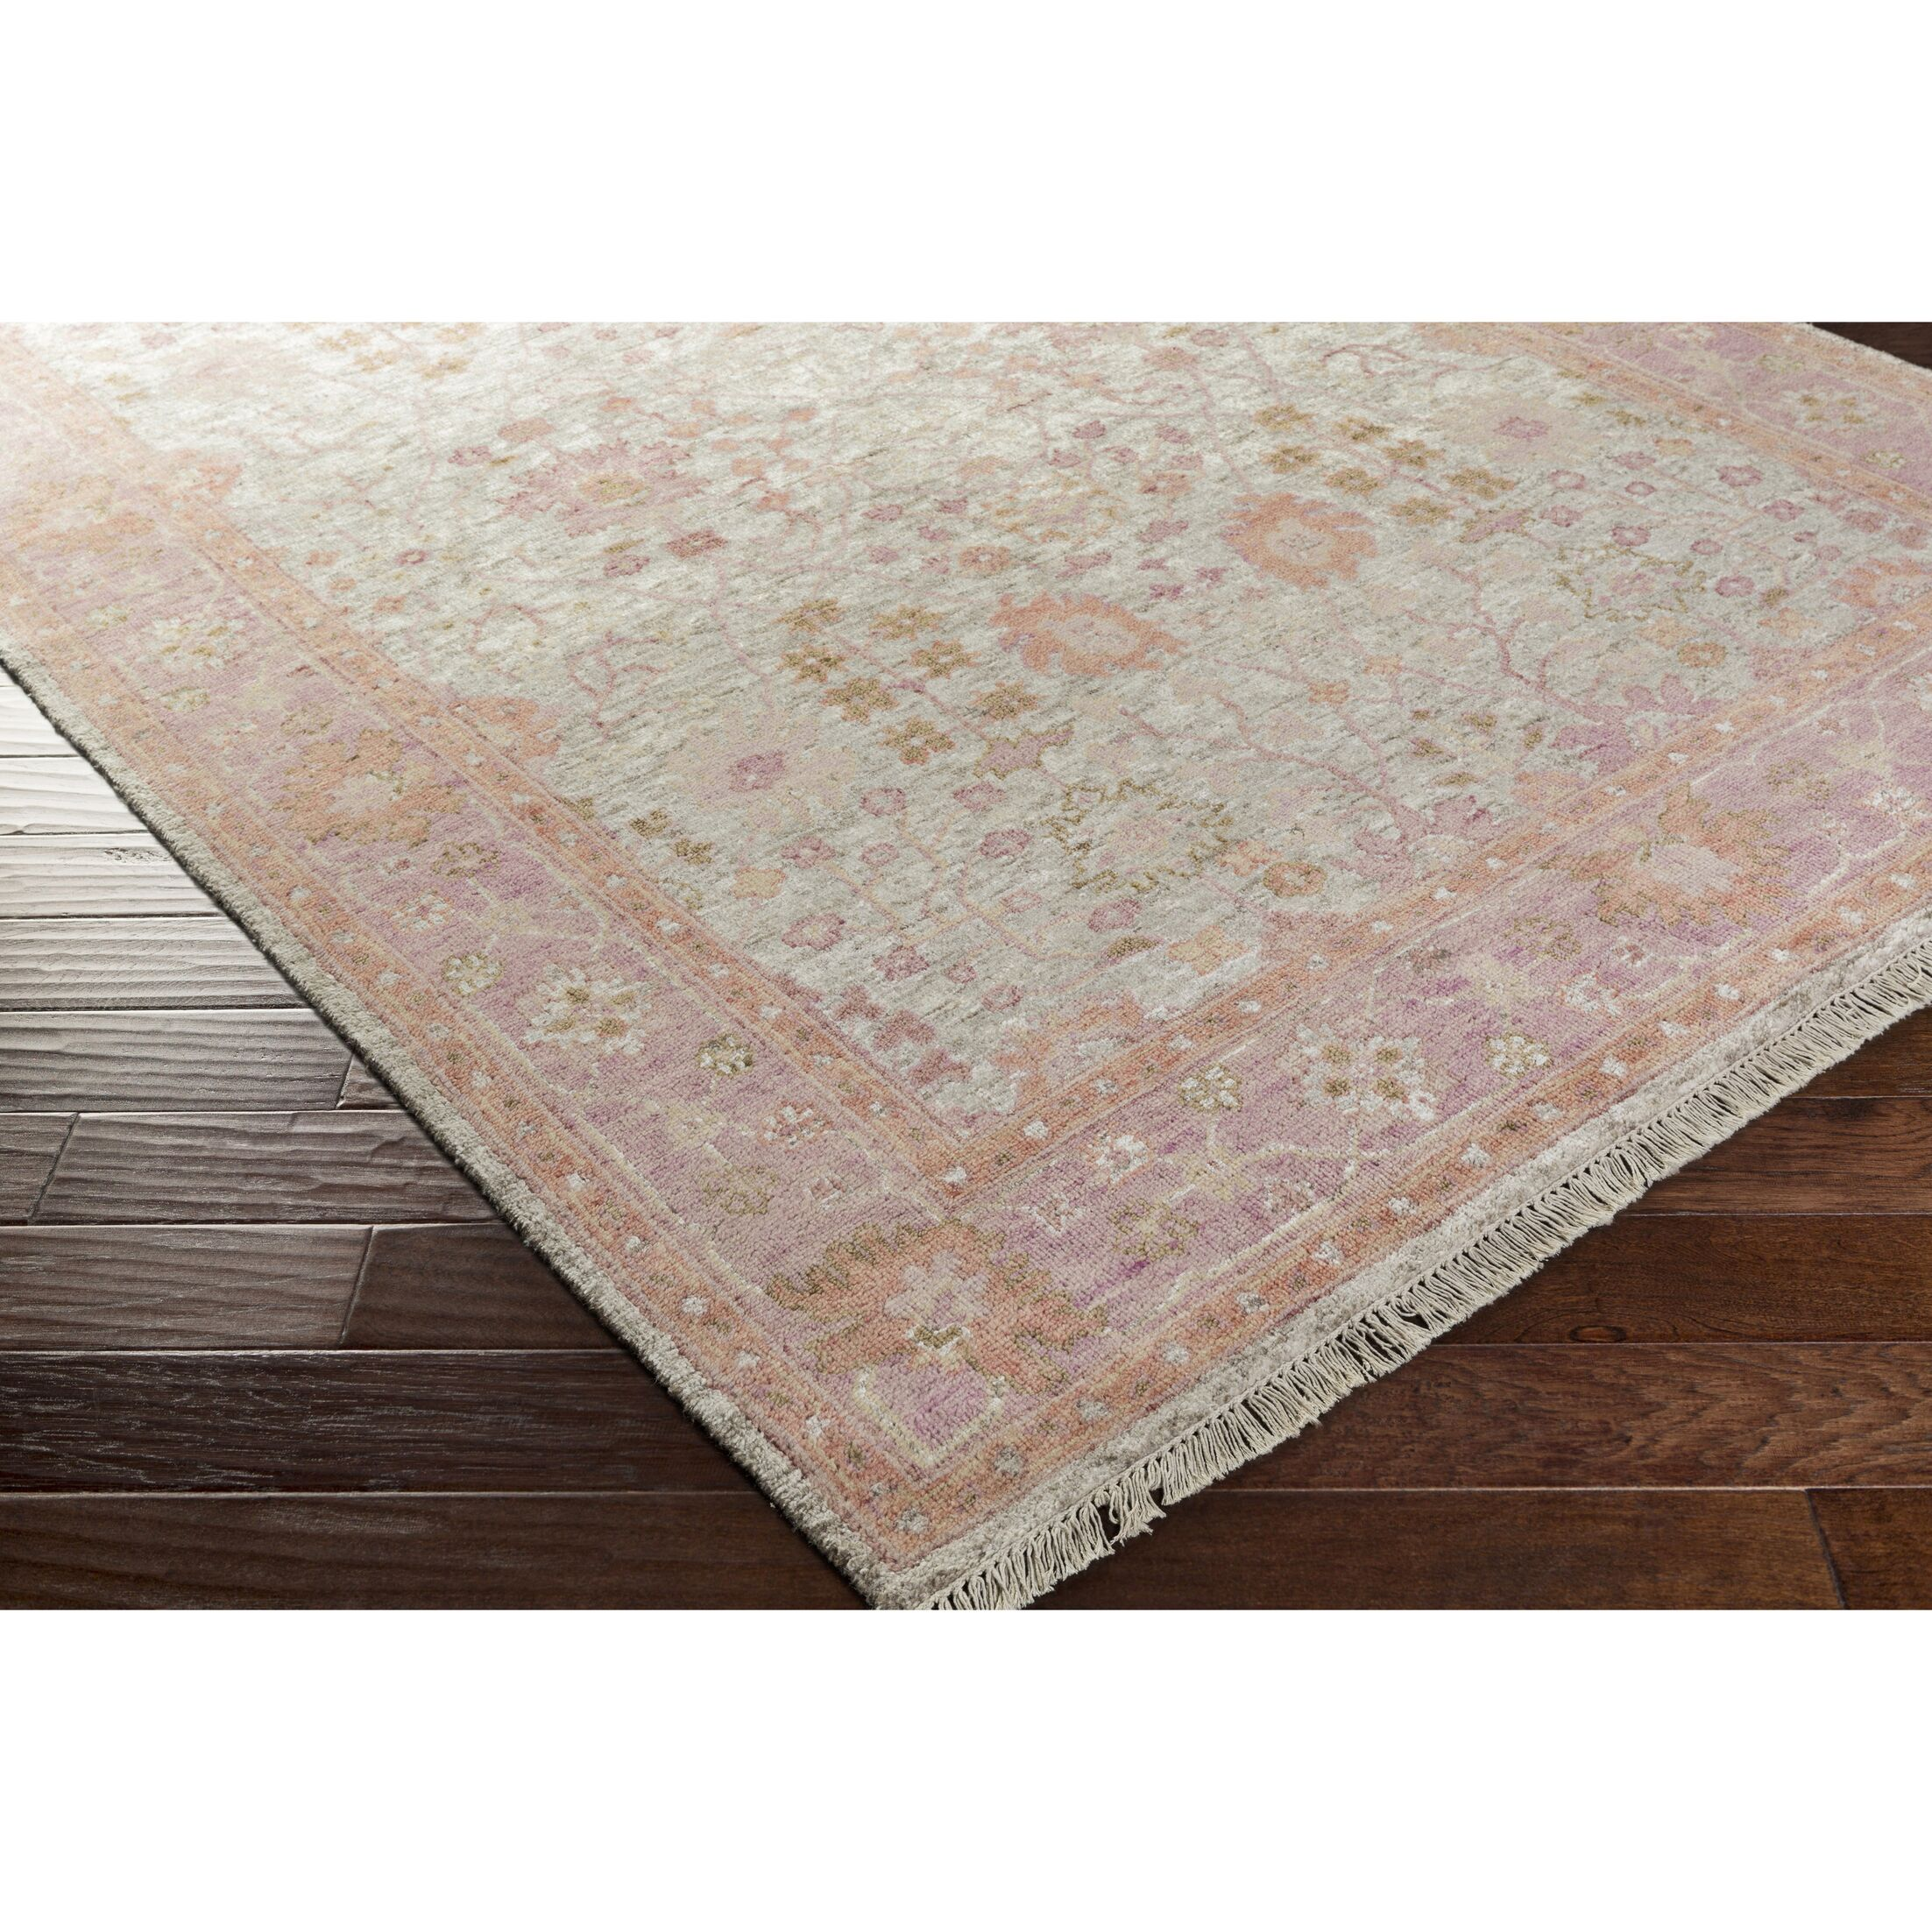 Skegness Hand-Knotted Orange/Pink Area Rug Rug Size: Rectangle 6' x 9'